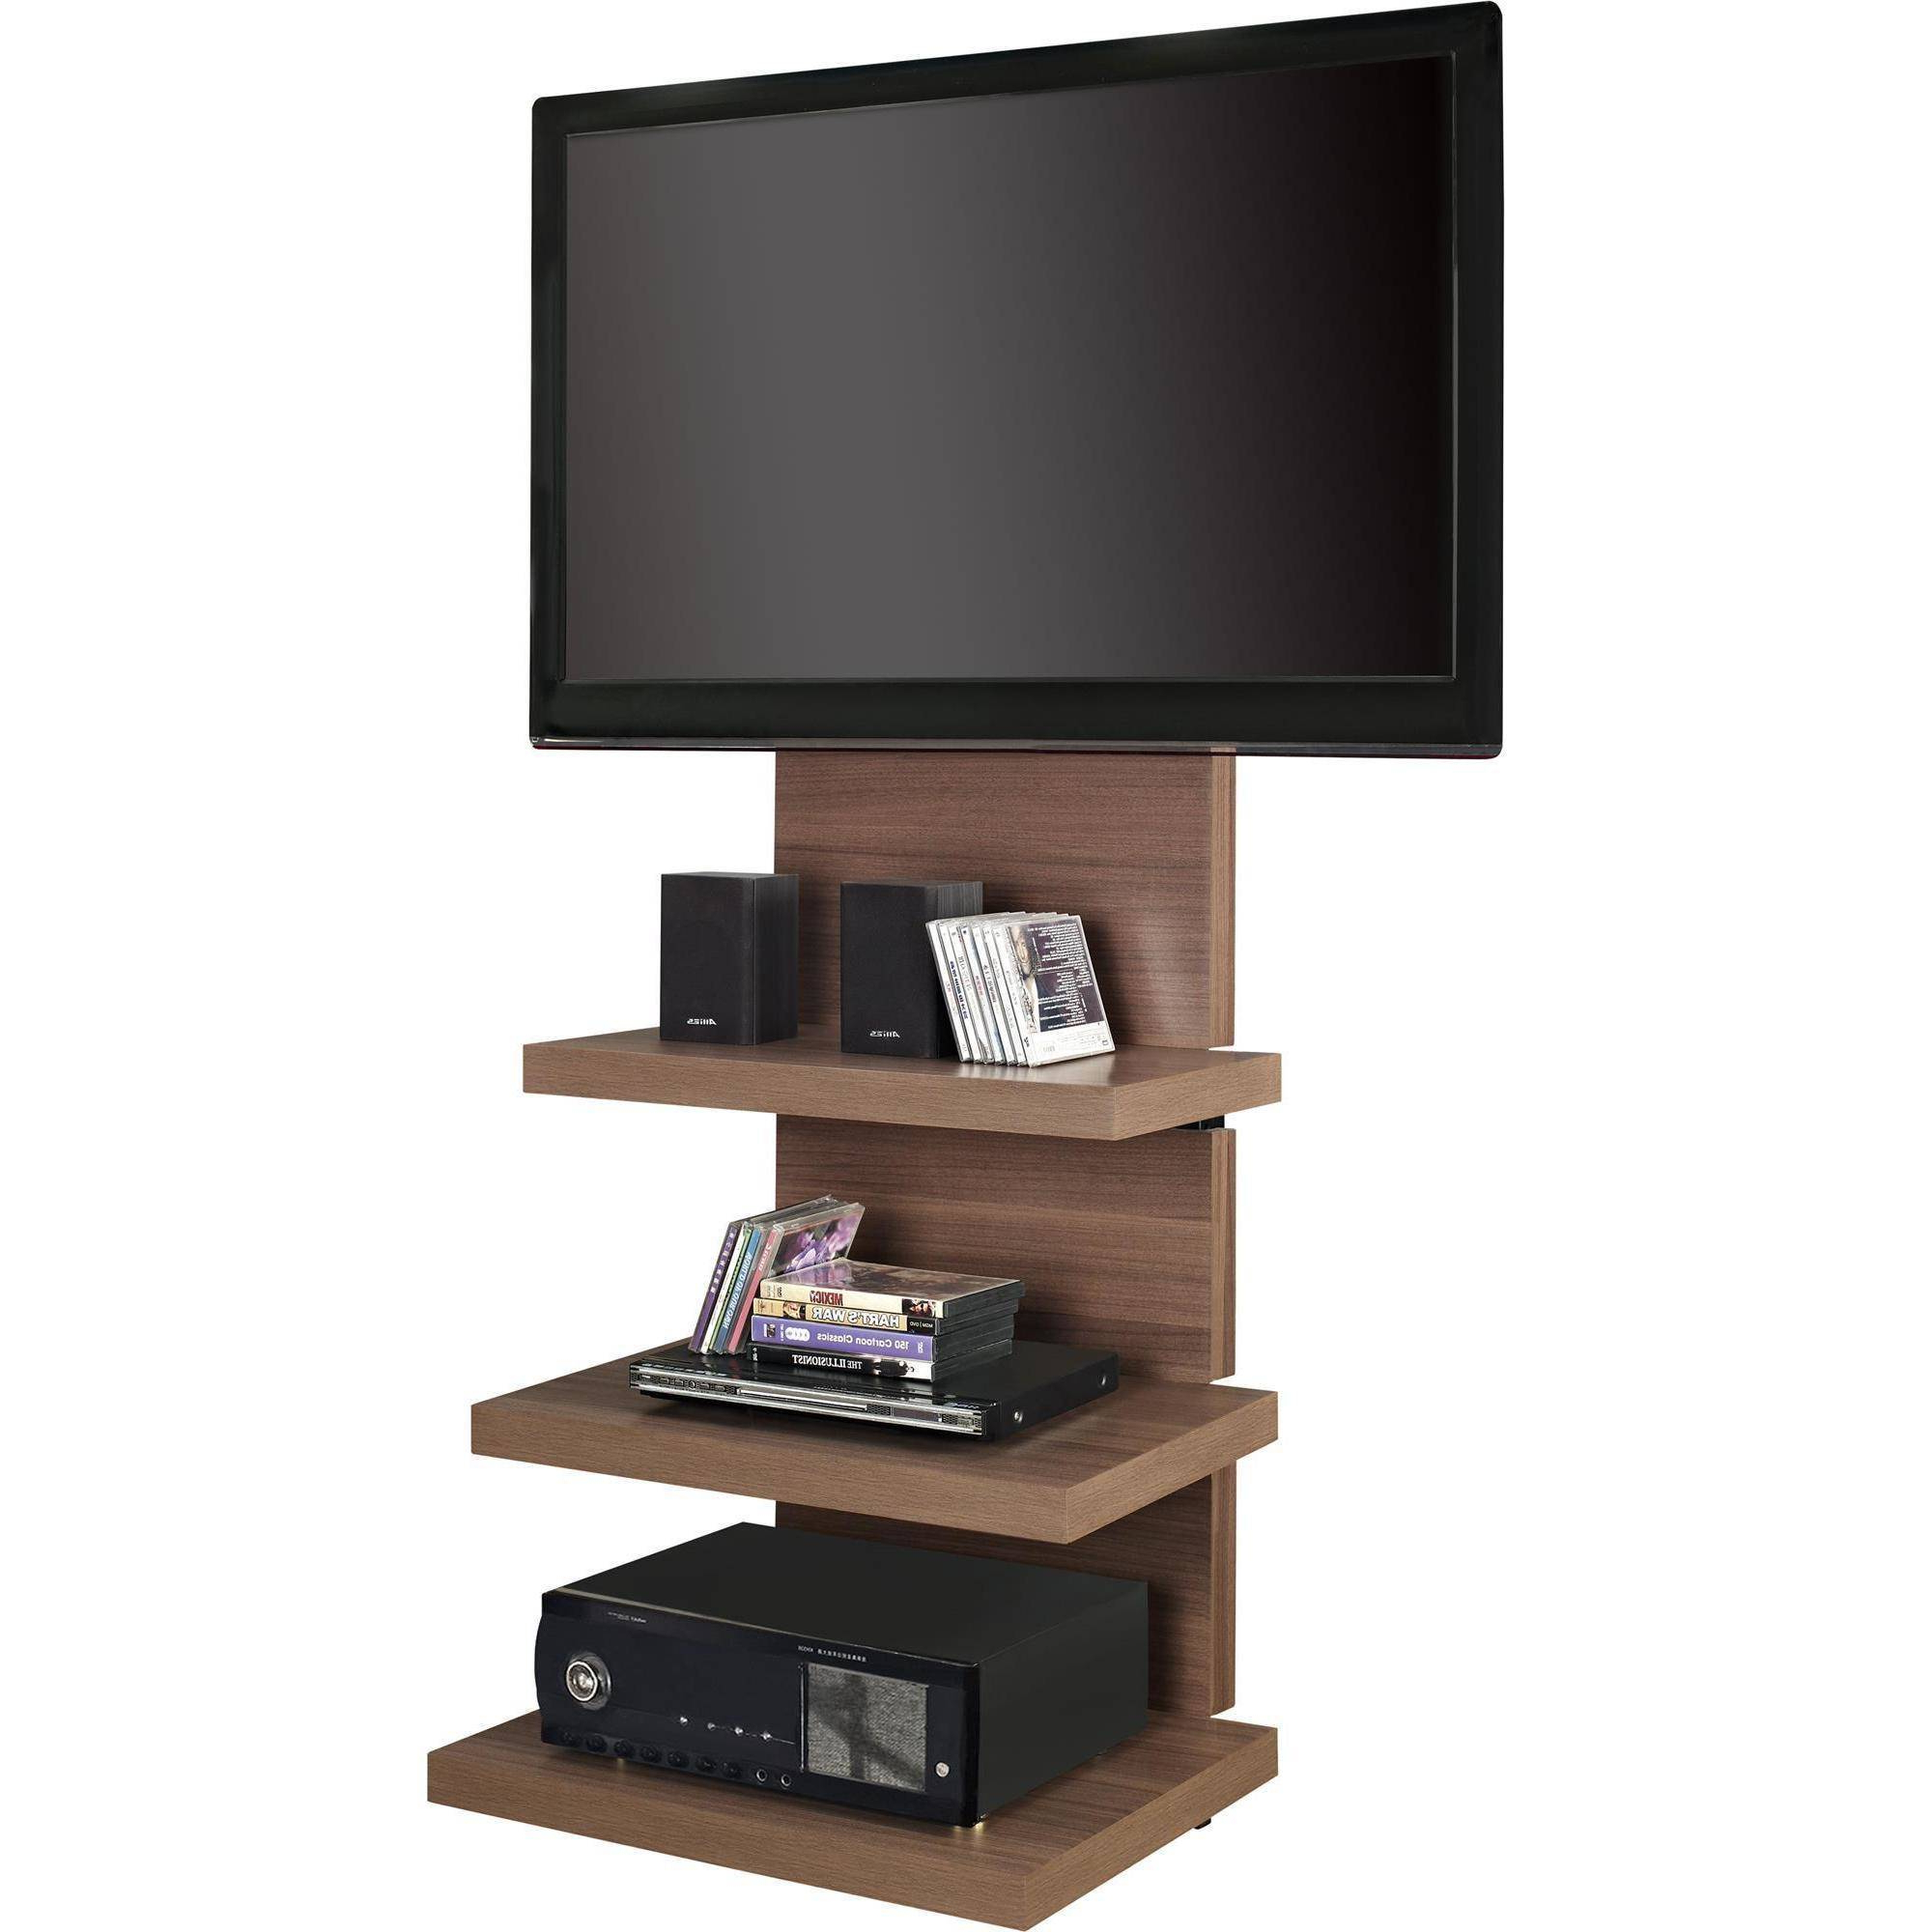 Altra Wall Mount Tv Stand With 3 Shelves, For Tvs Up To 60 Pertaining To Glass Shelf With Tv Stands (View 4 of 20)